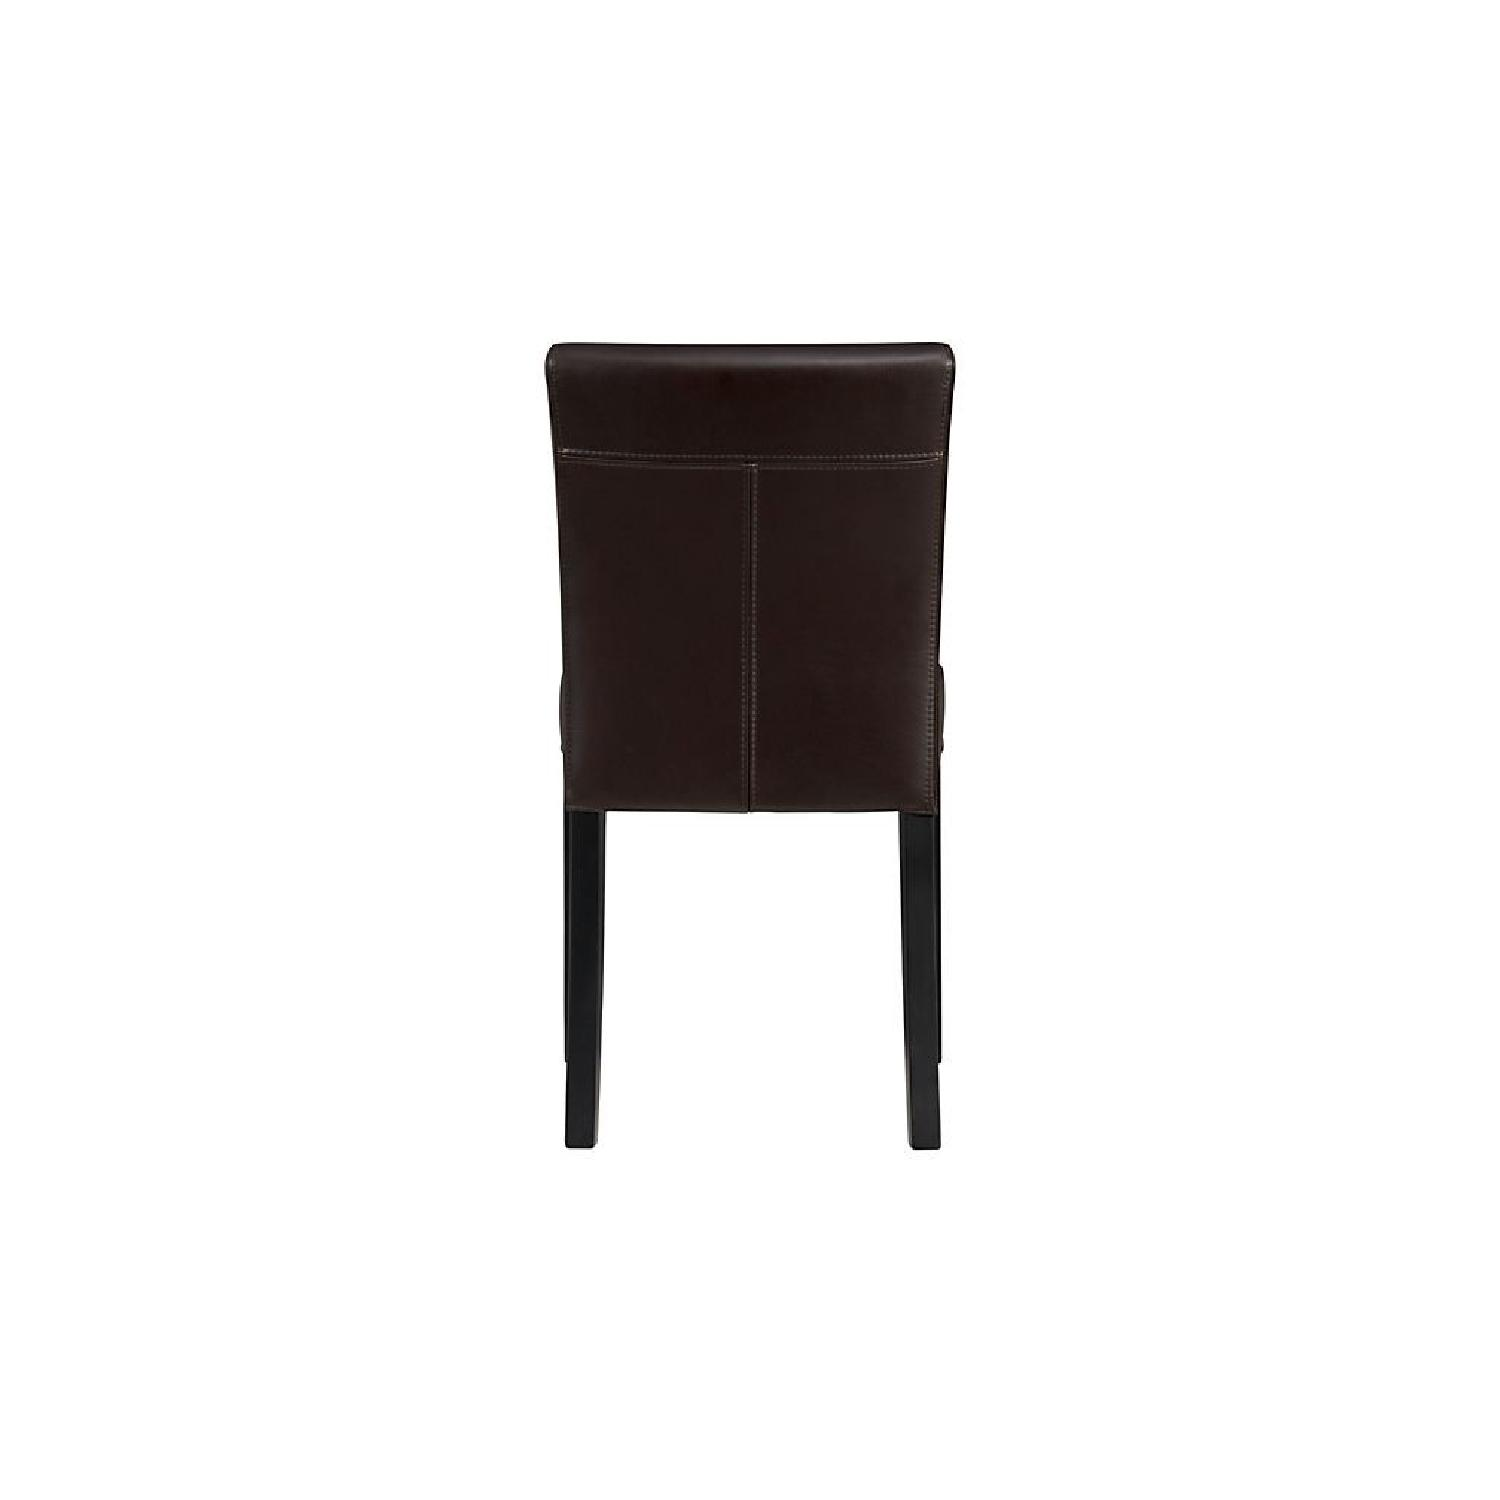 Crate & Barrel Lowe Chocolate Leather Dining Chairs-0